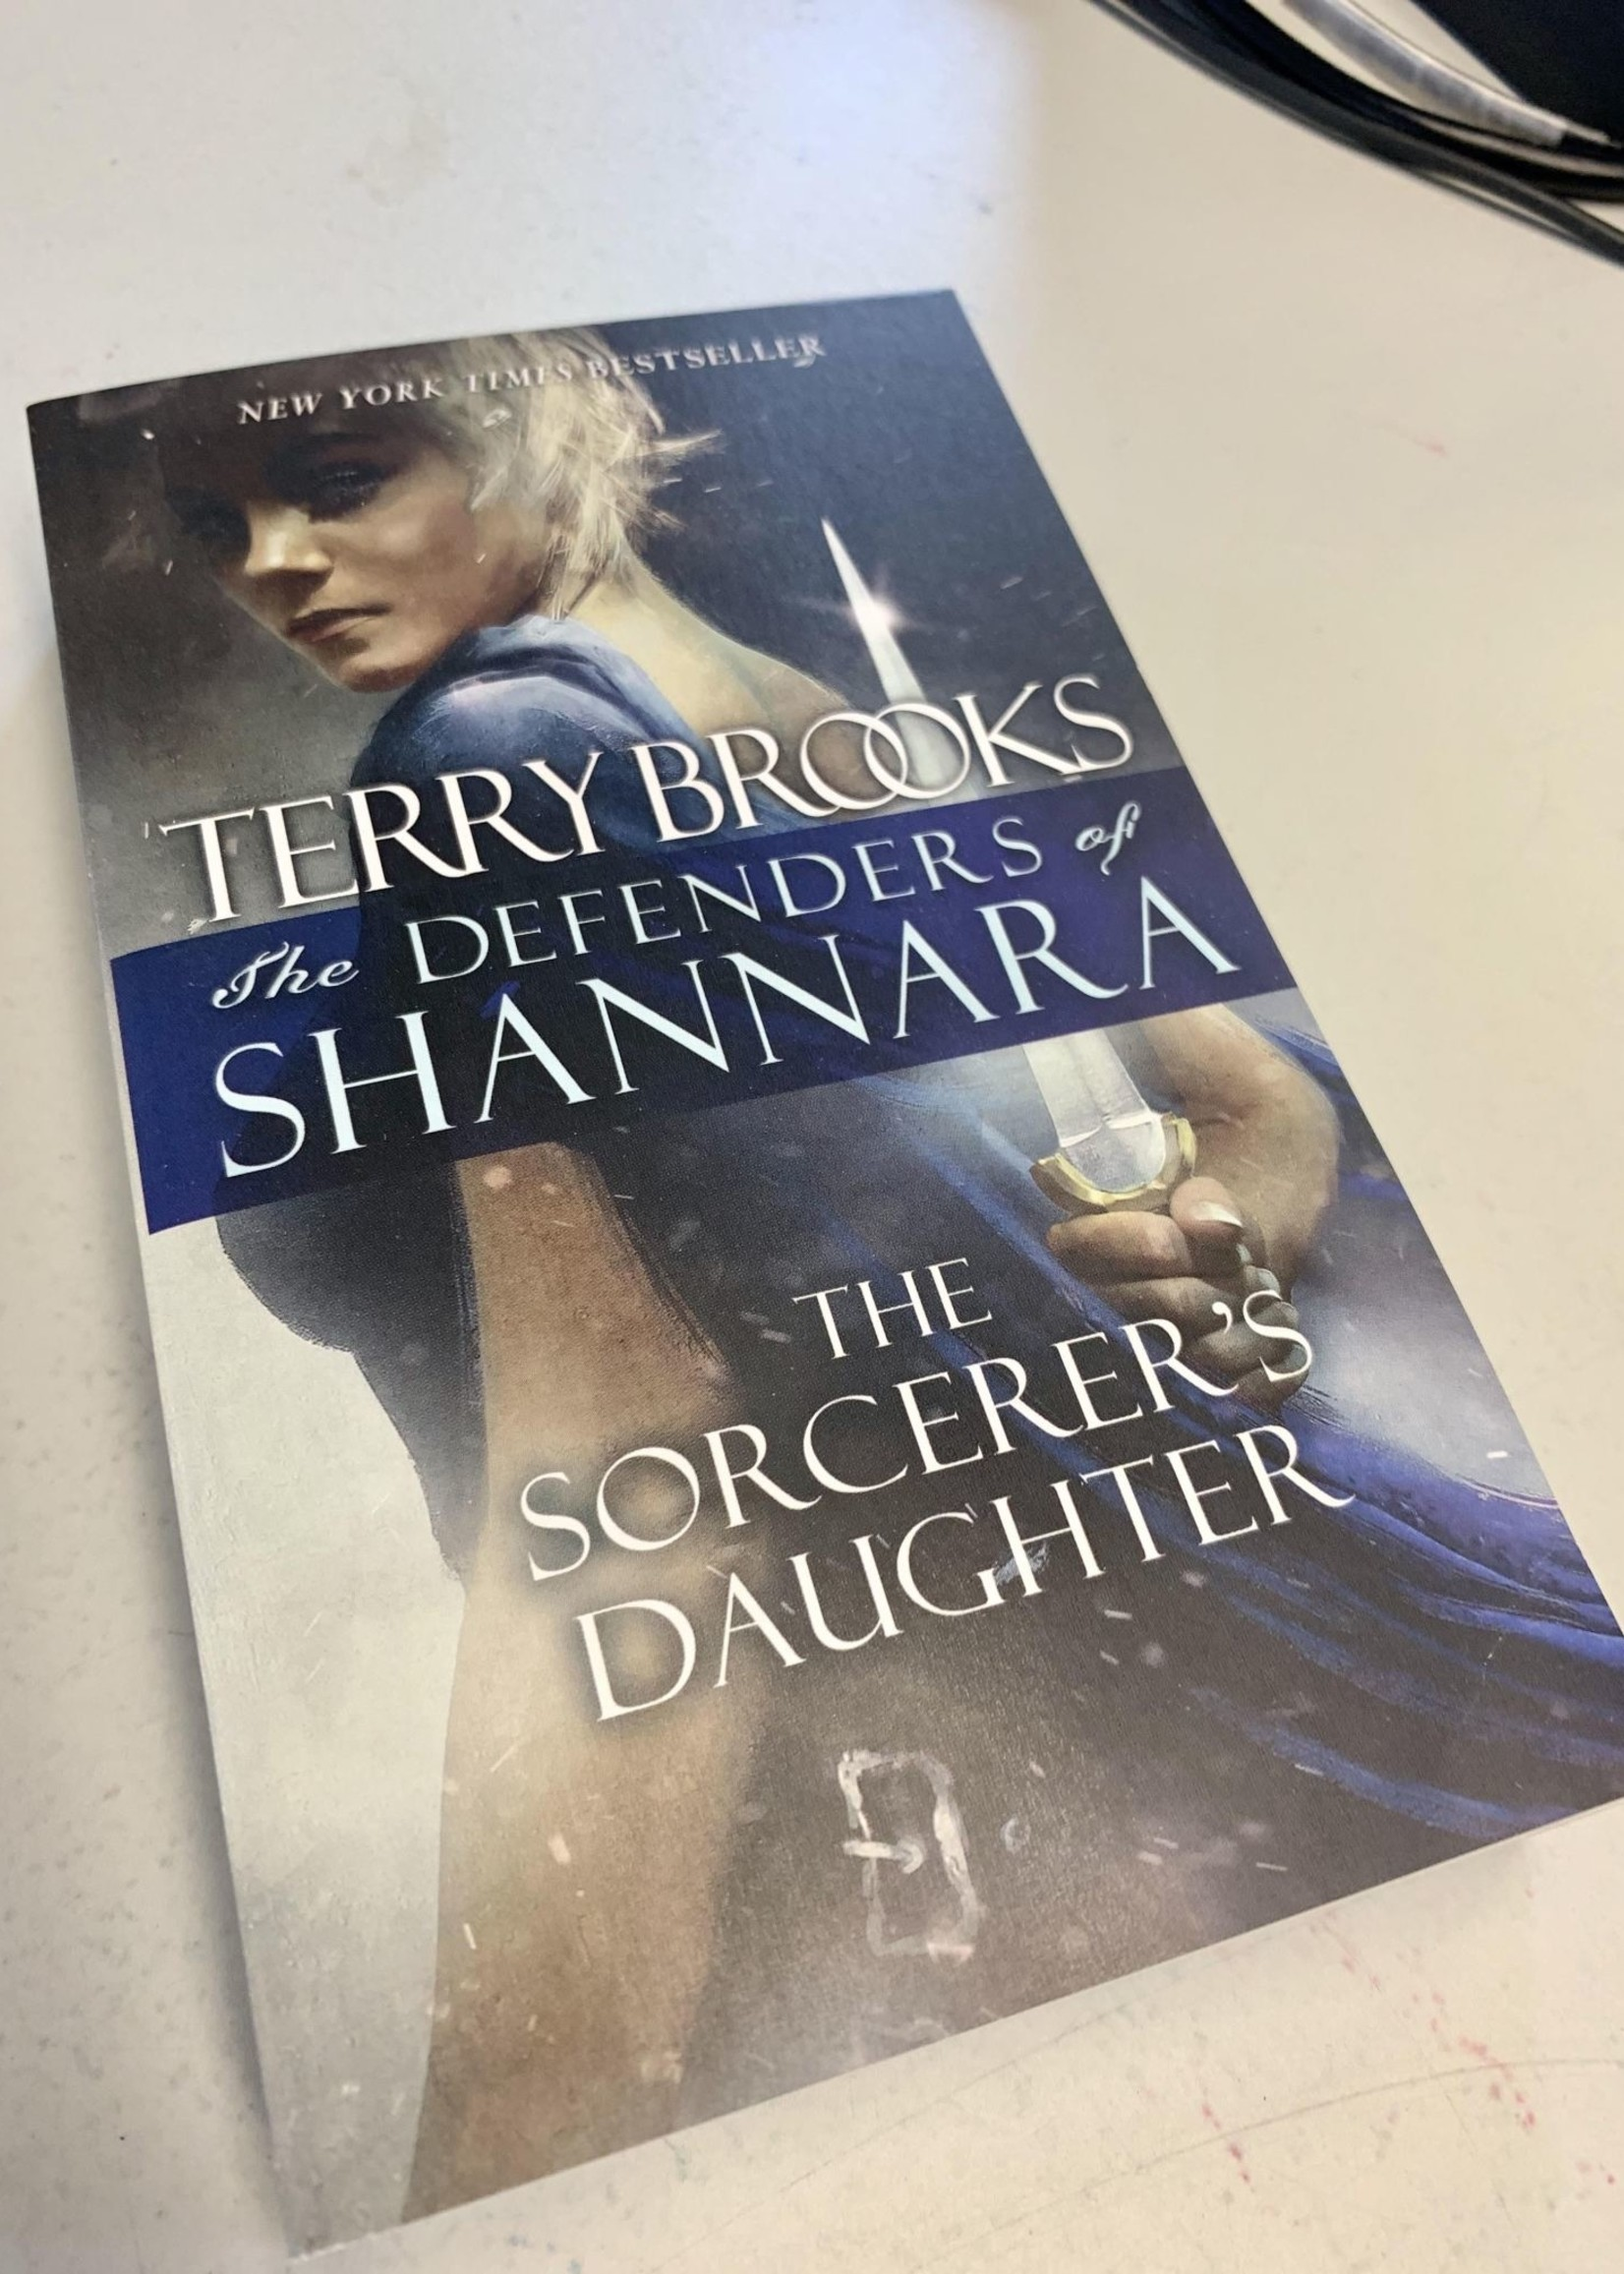 The Sorcerer's Daughter - Terry Brooks